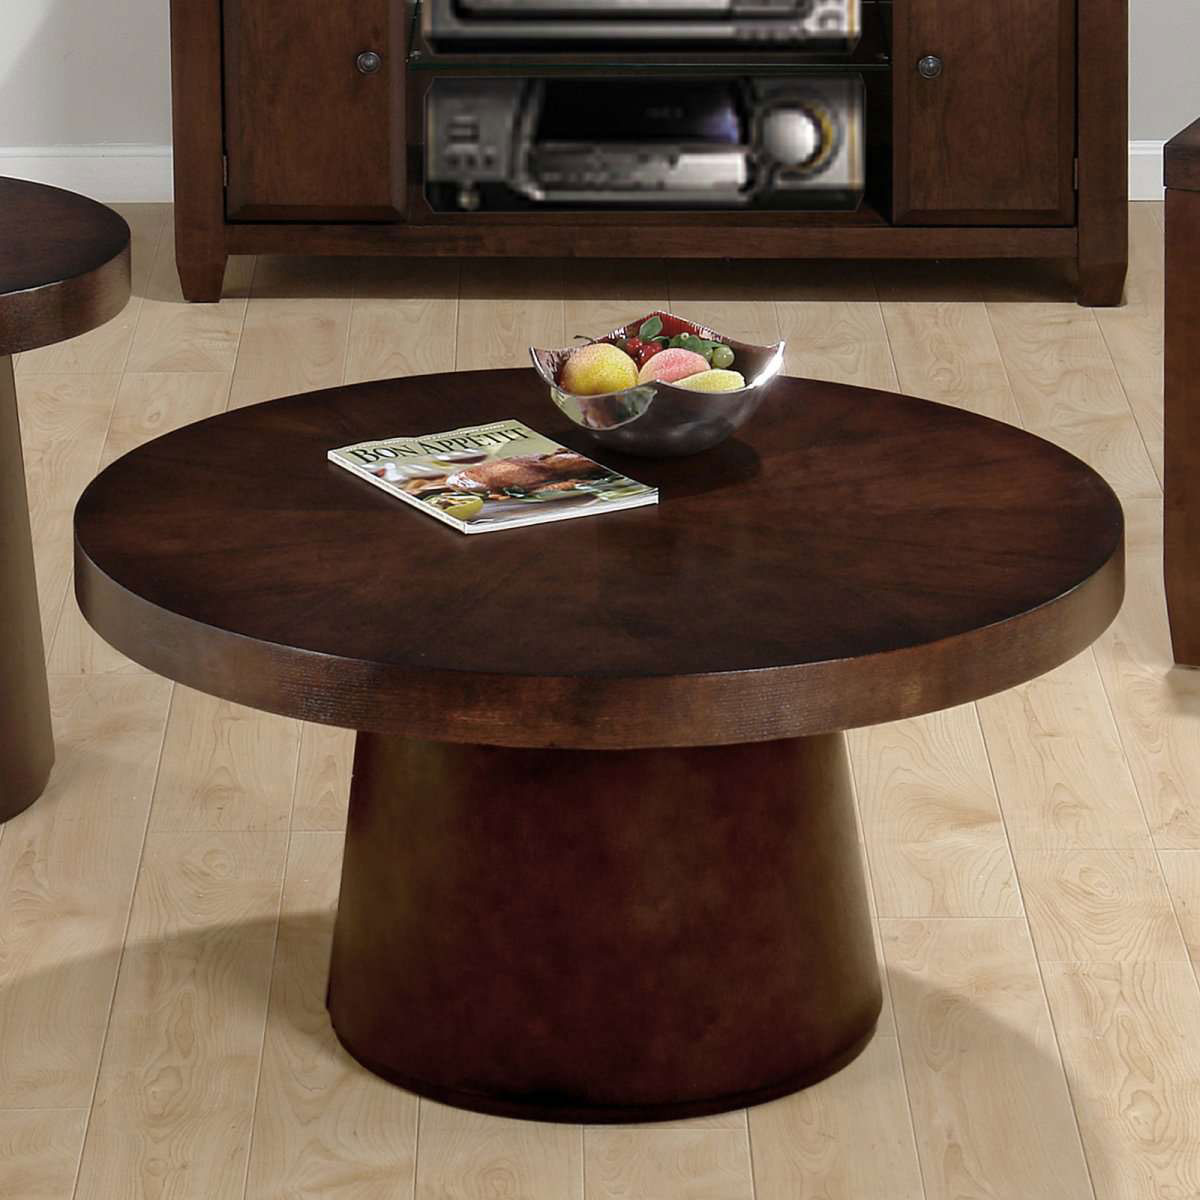 Amazing Unique Round Coffee Tables For Small Living